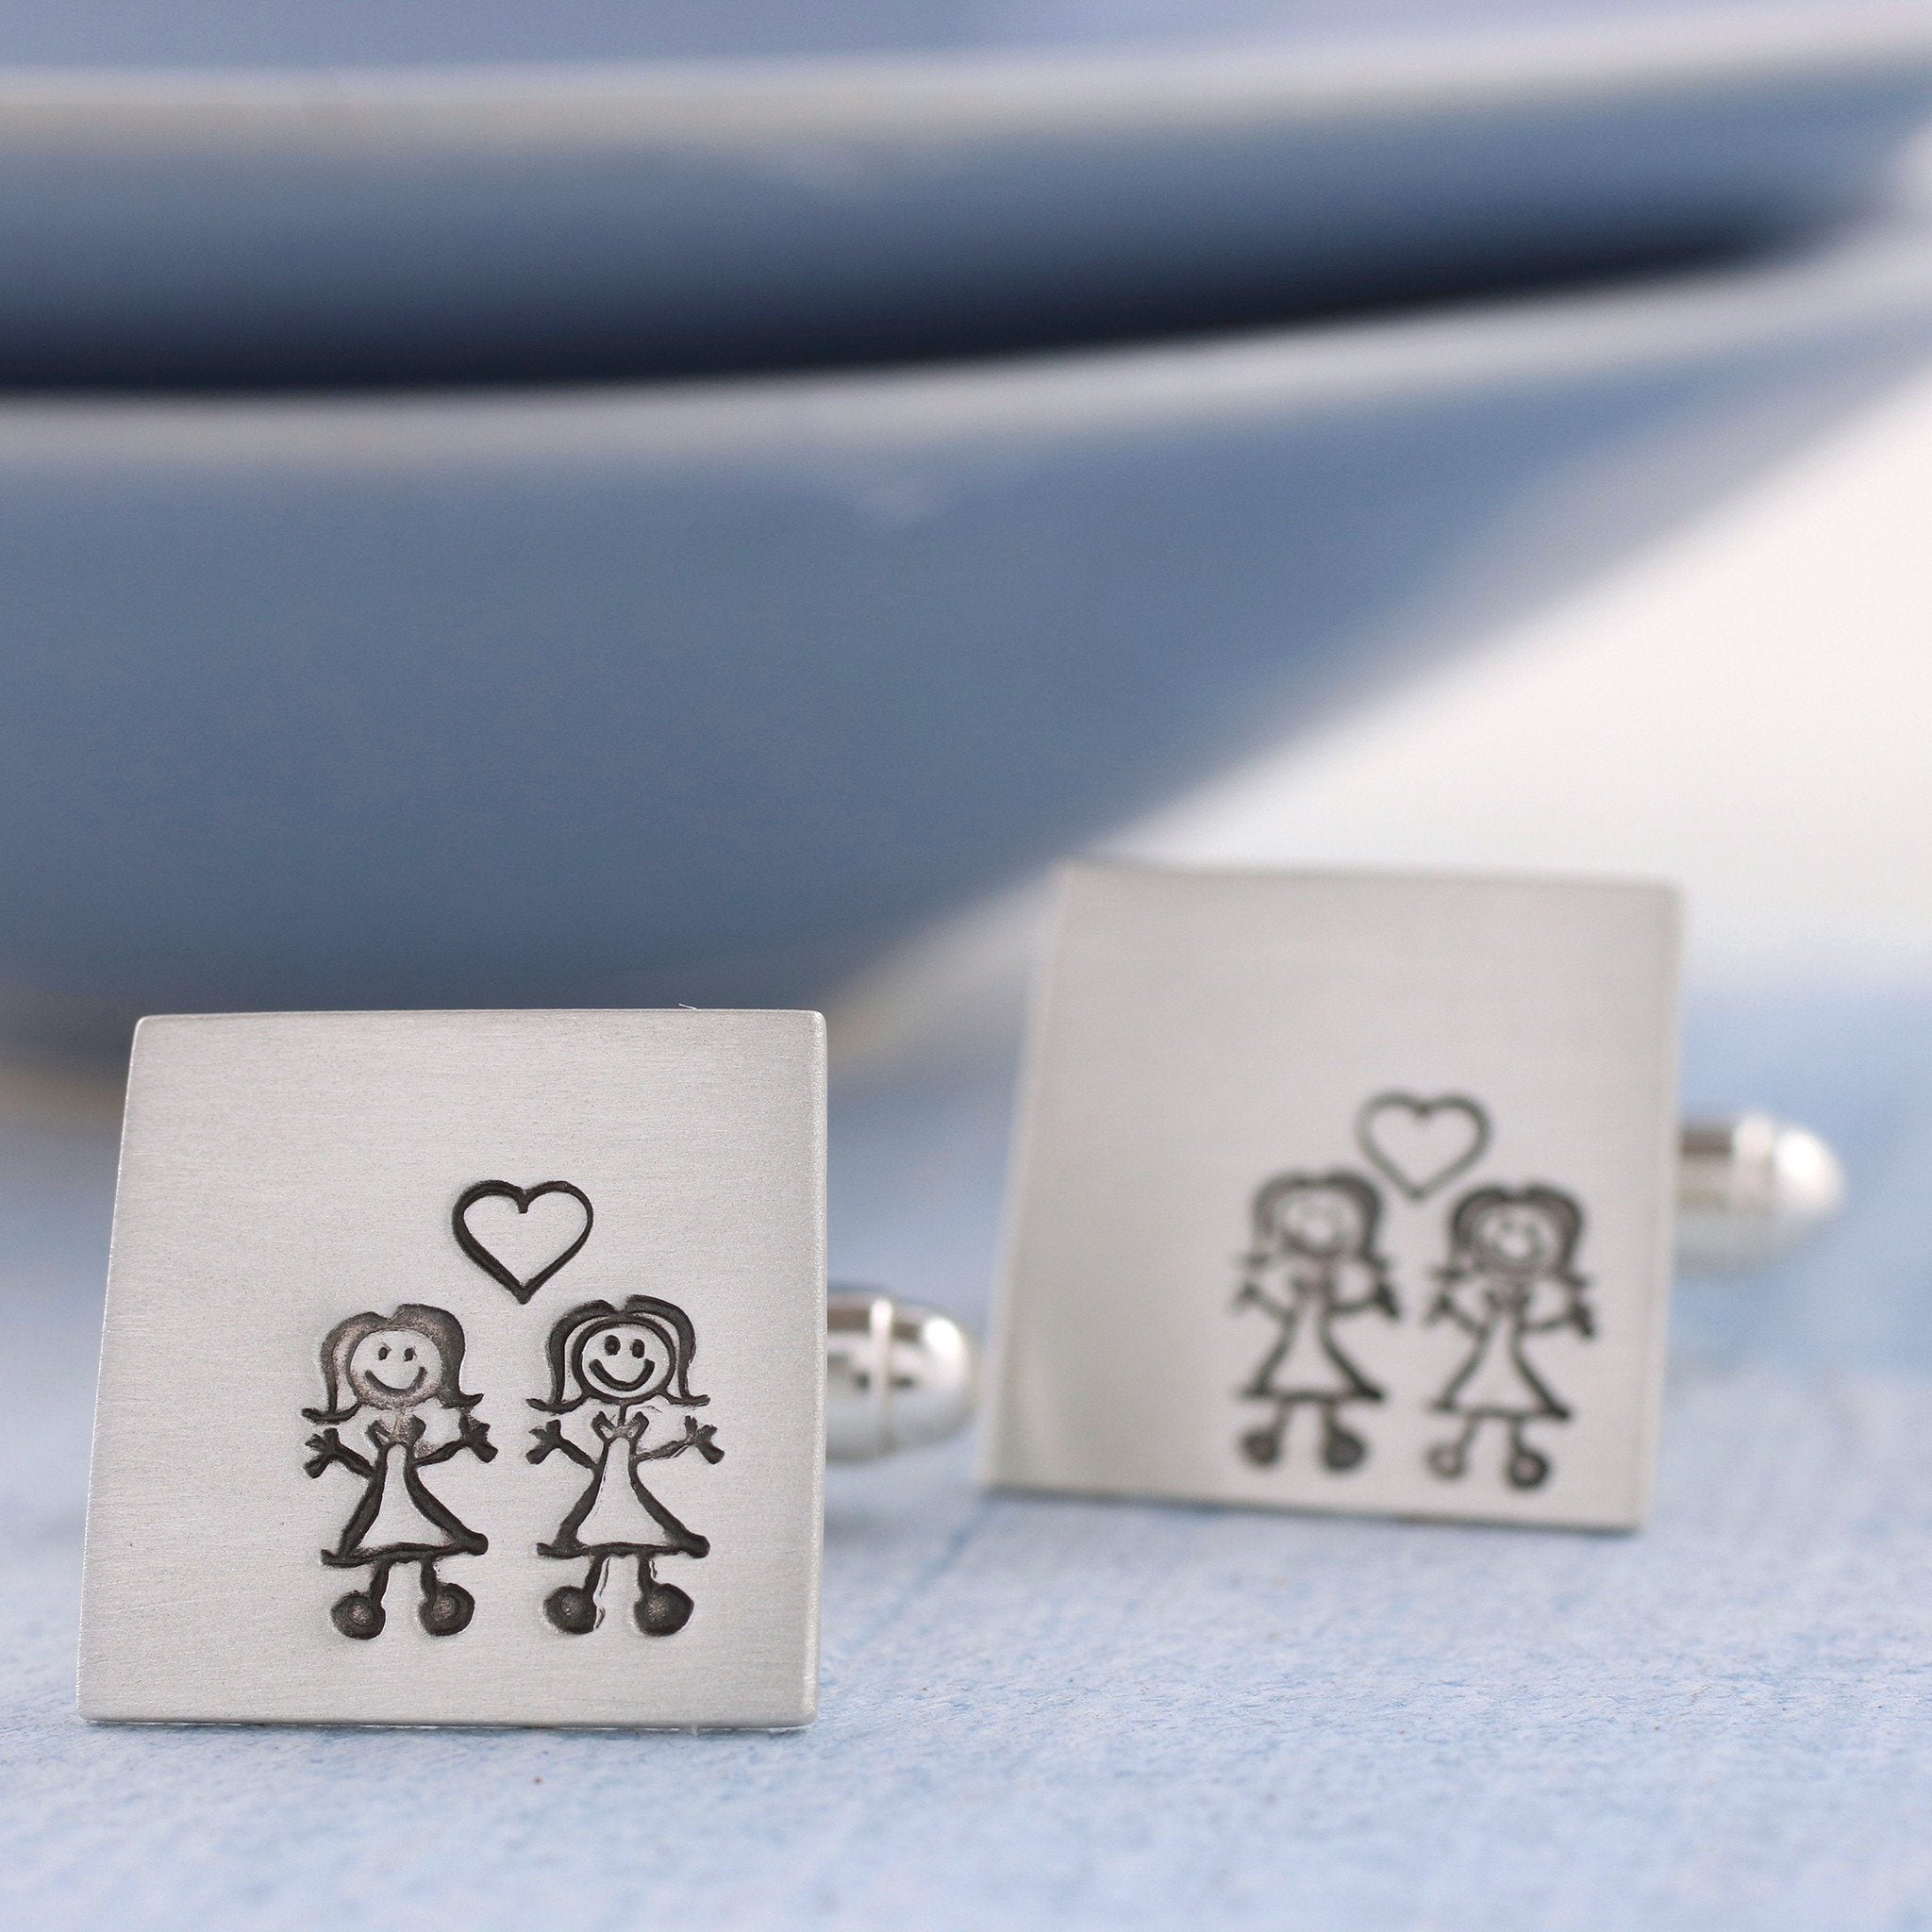 stick figure cufflinks